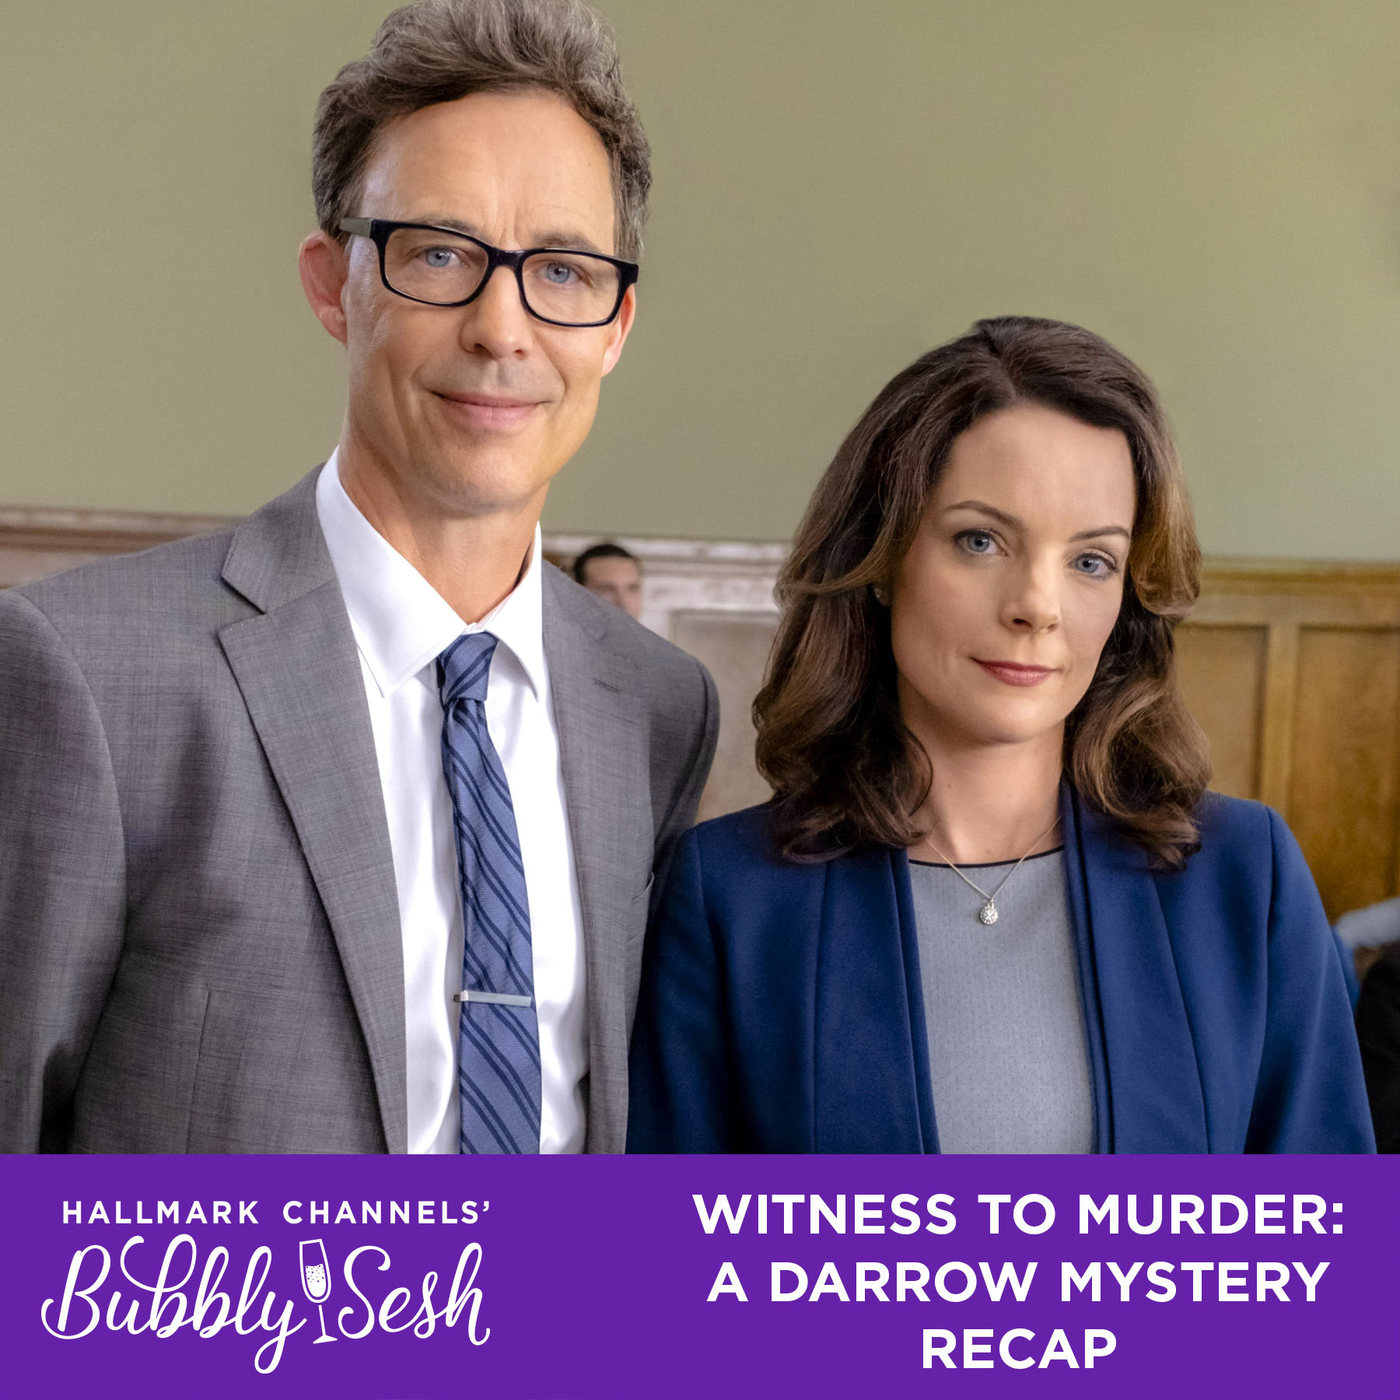 Witness to Murder: A Darrow Mystery Recap | Hallmark Channel's Bubbly Sesh